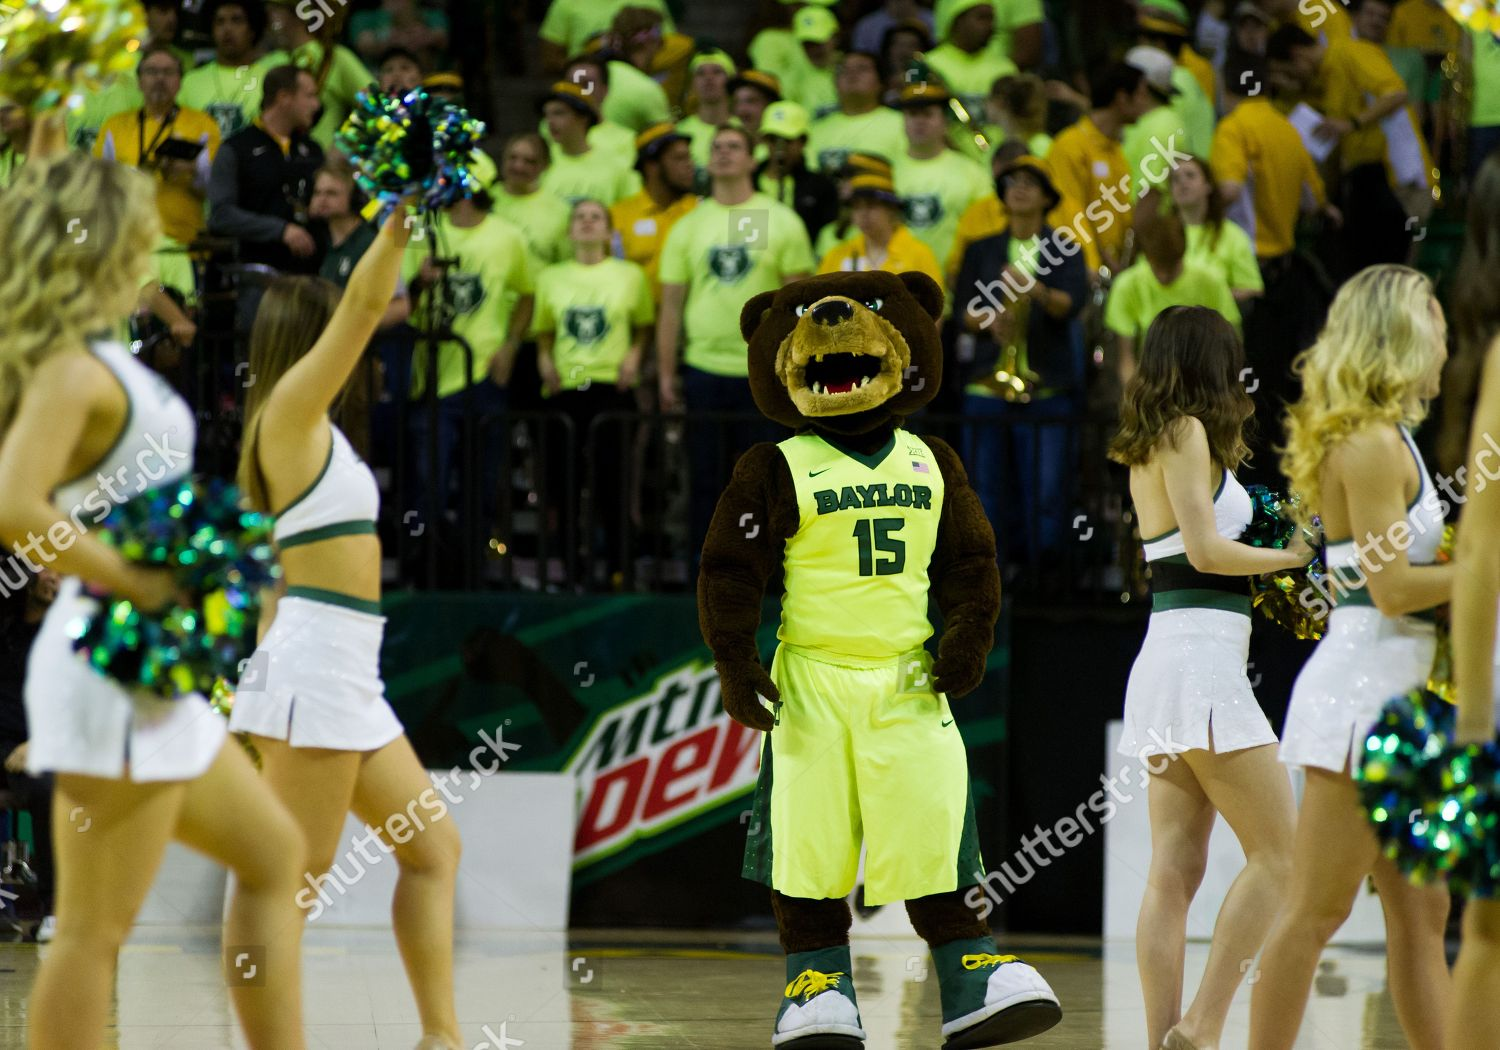 Baylor Bears Mascot Wit Cheerleaders Before Ncaa Editorial Stock